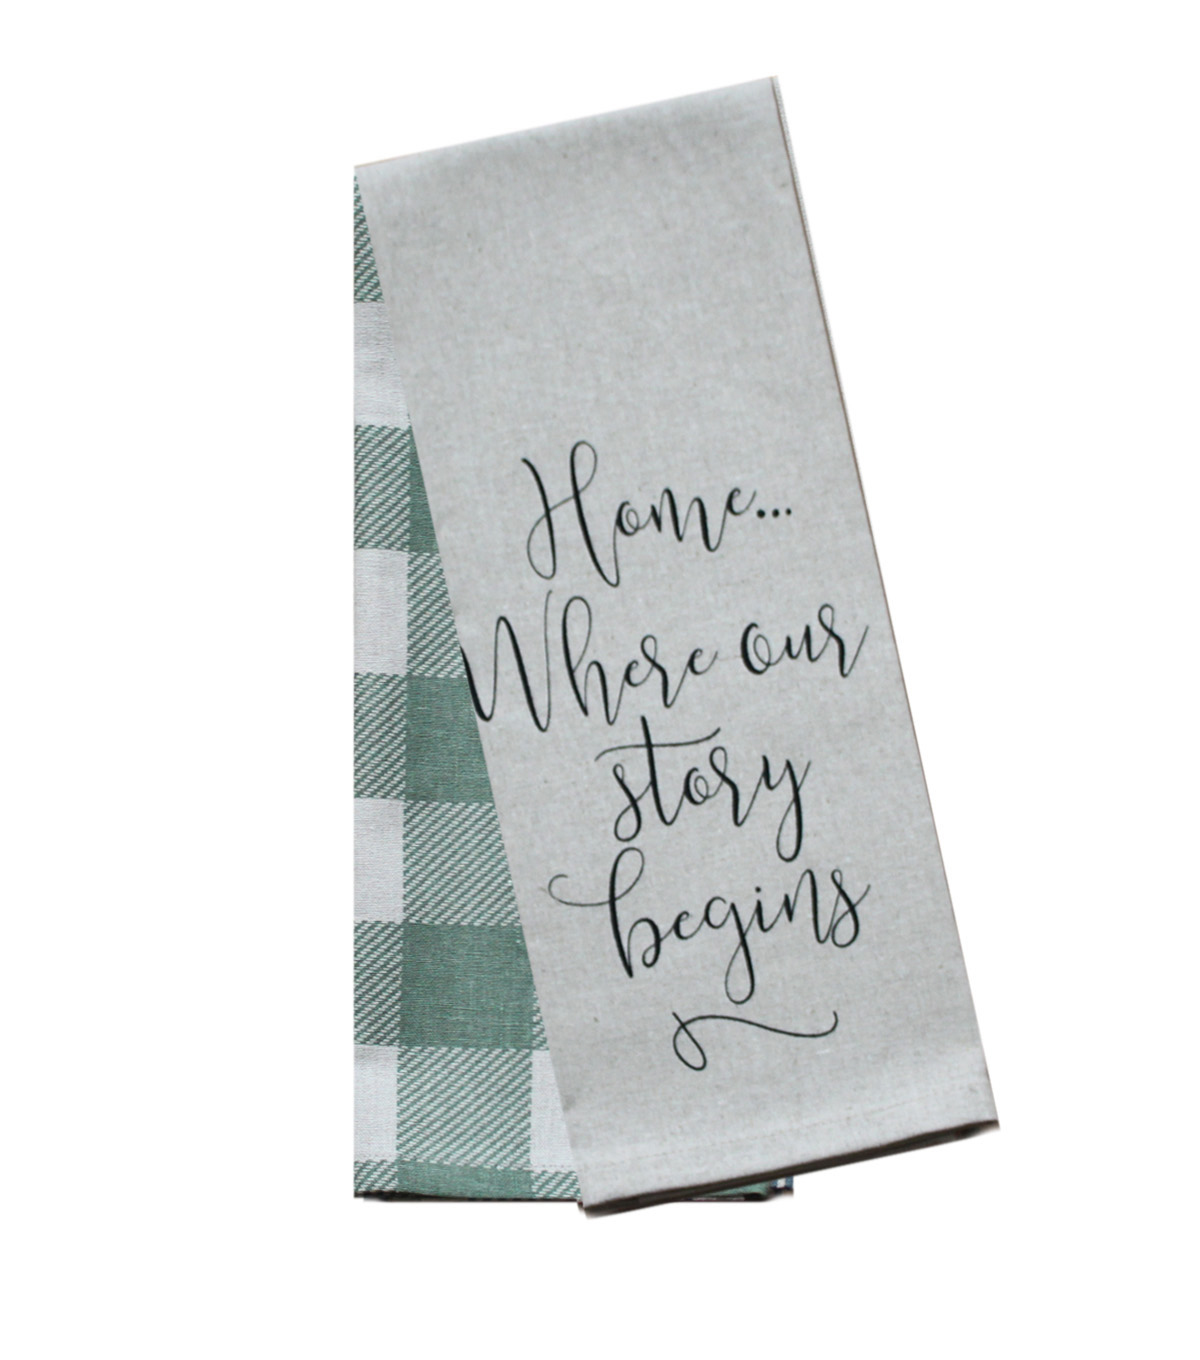 Hudson 43 Farm 2 Pack Towels-Home Where Our Story Begins & Green Checks